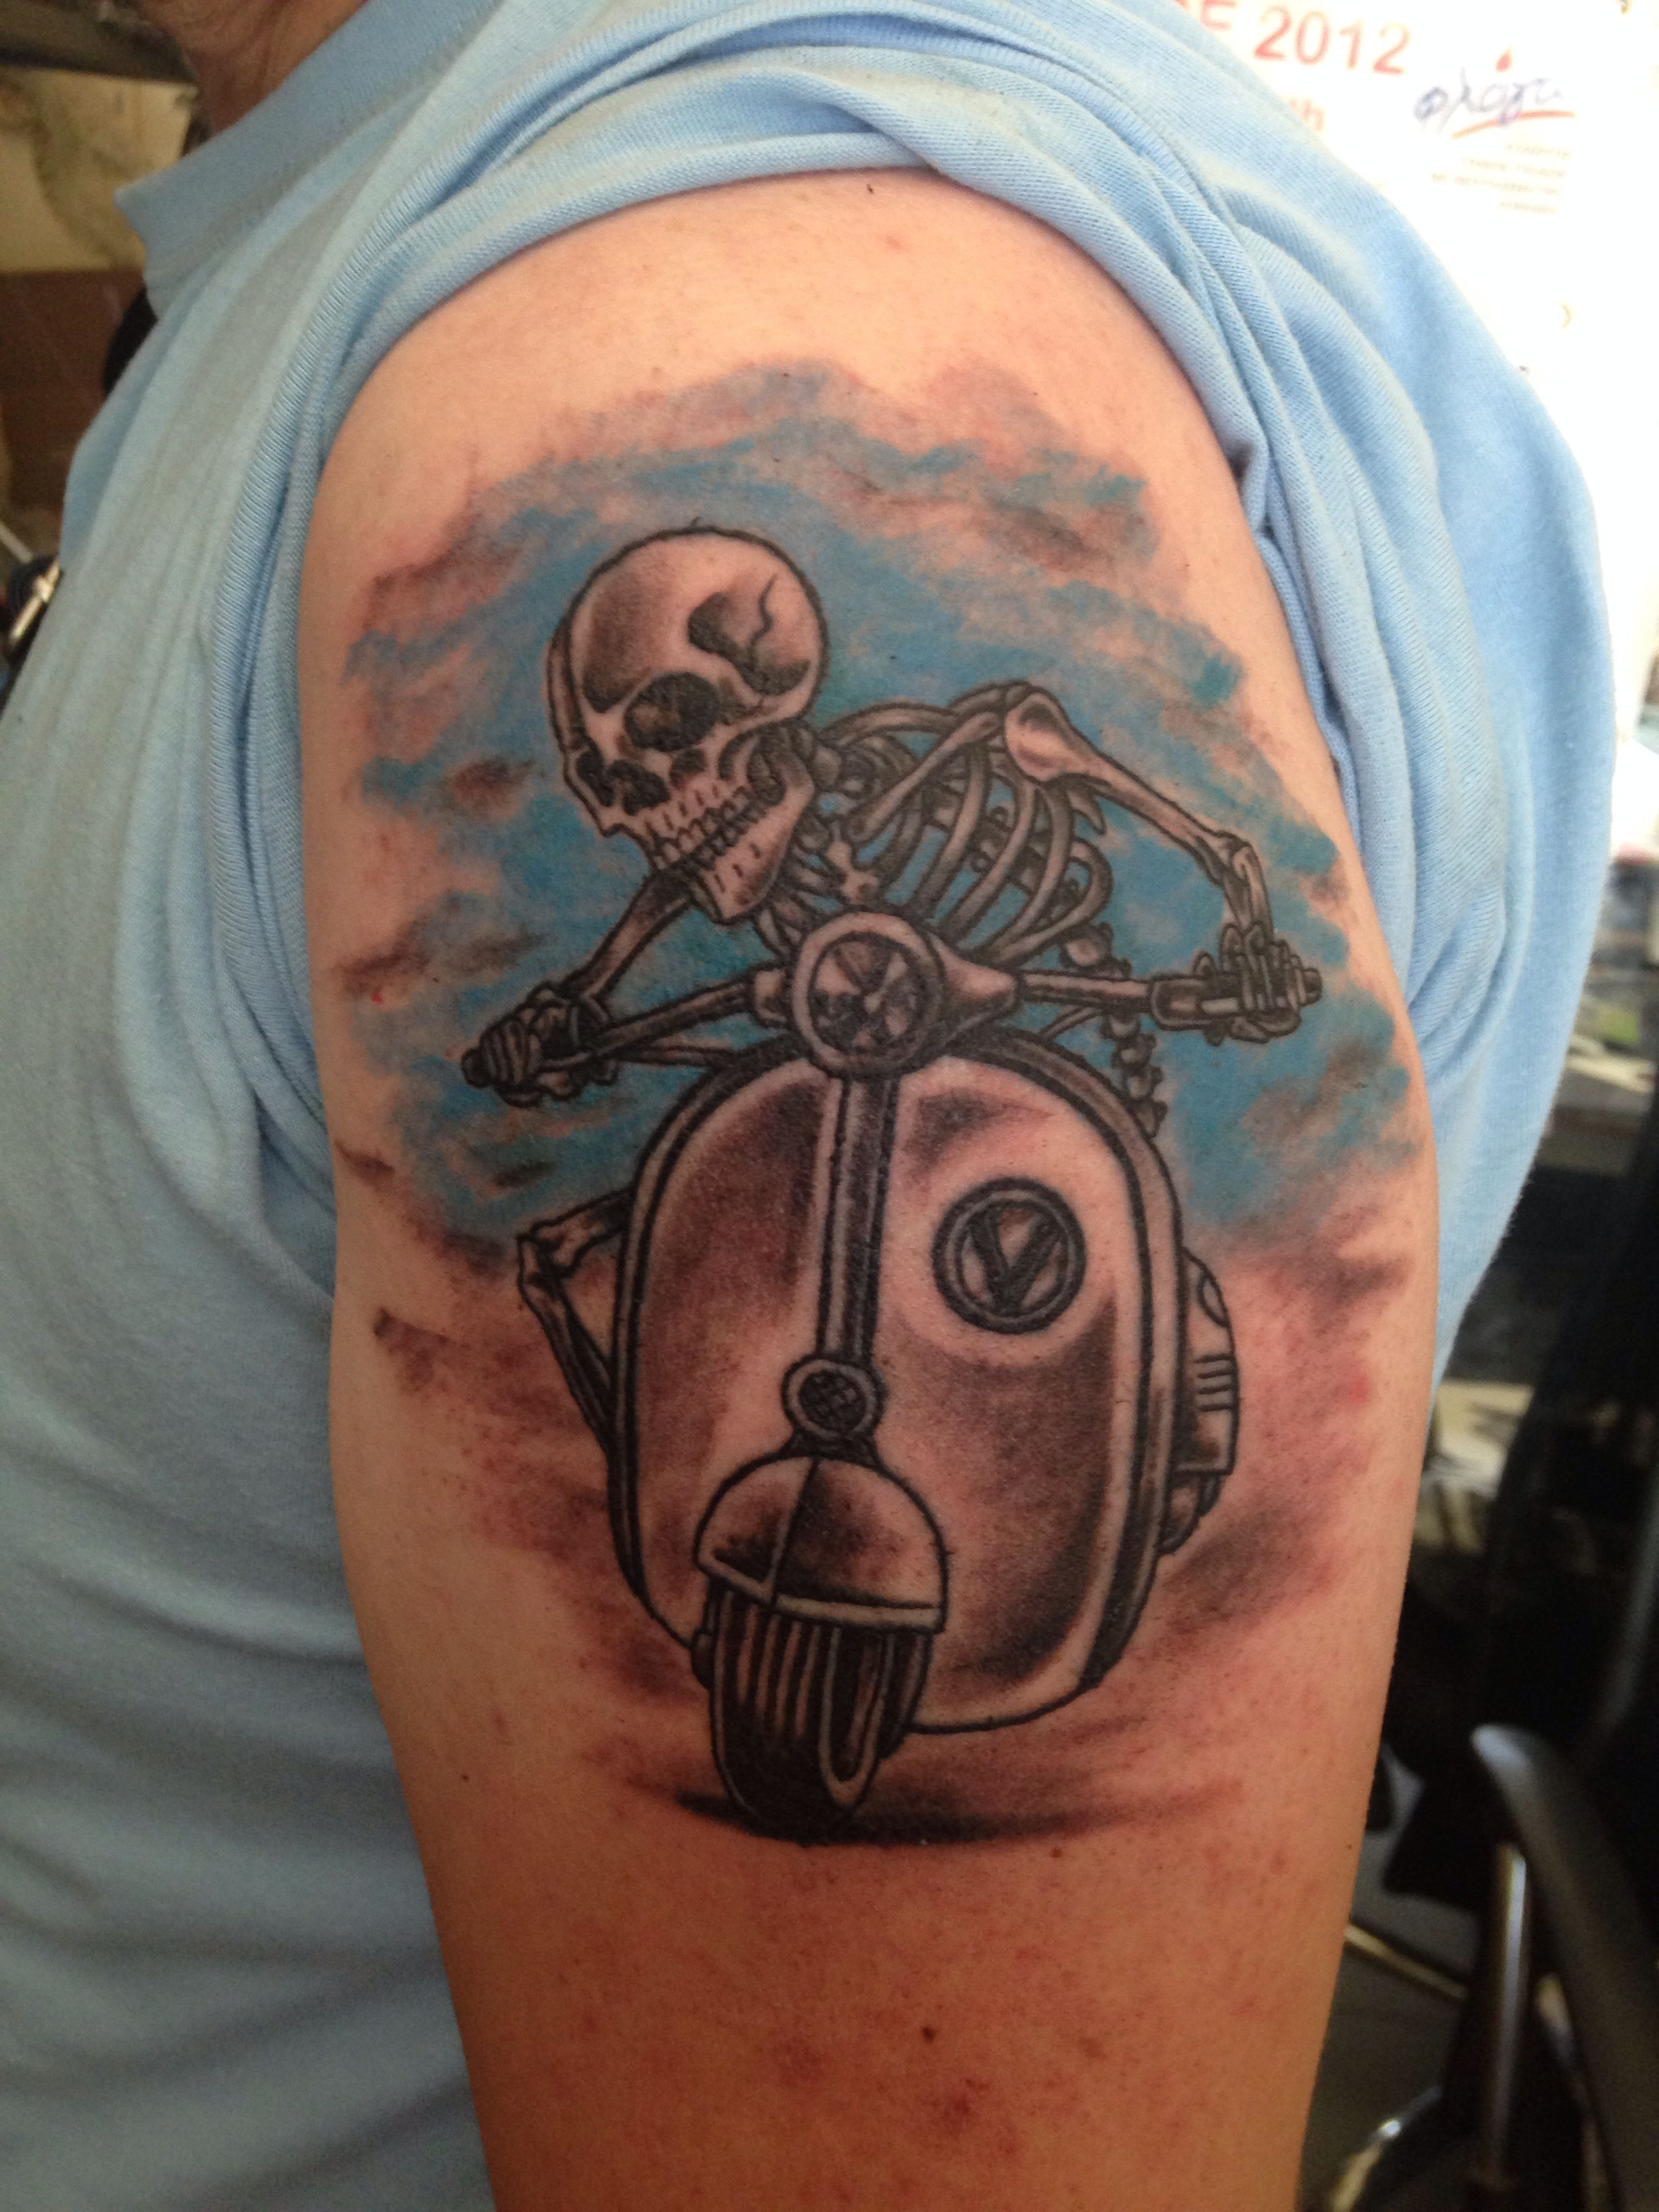 Custom Made Tattoo Vespa Body Art Tattoos Make Tattoo Tattoos